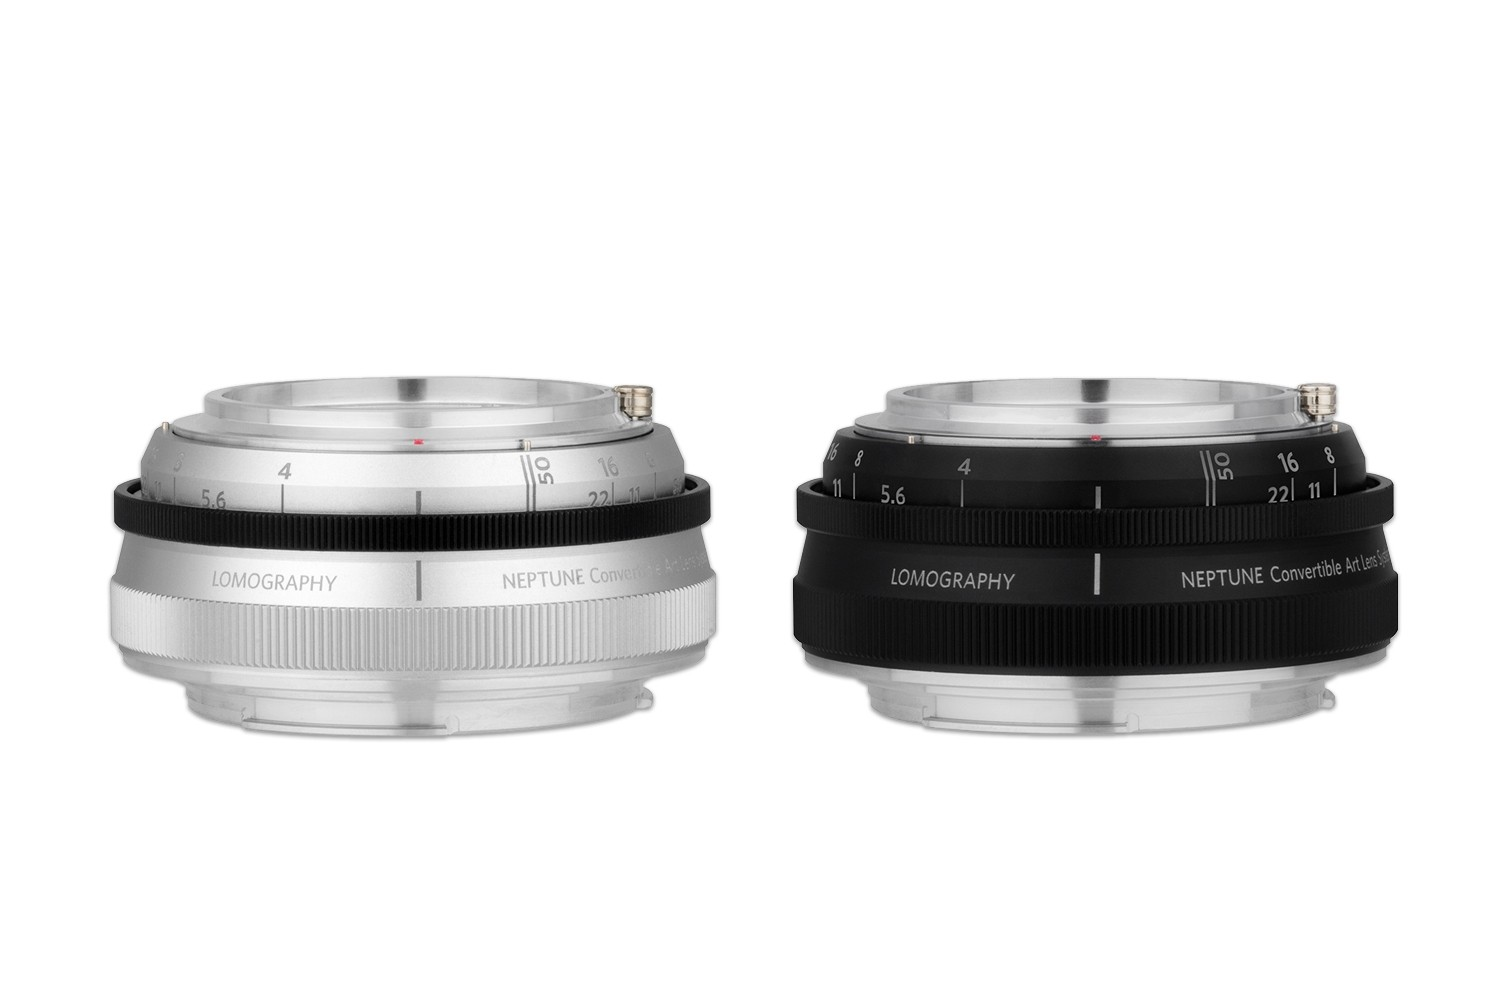 Neptune Convertible Lens Base Nikon Mount